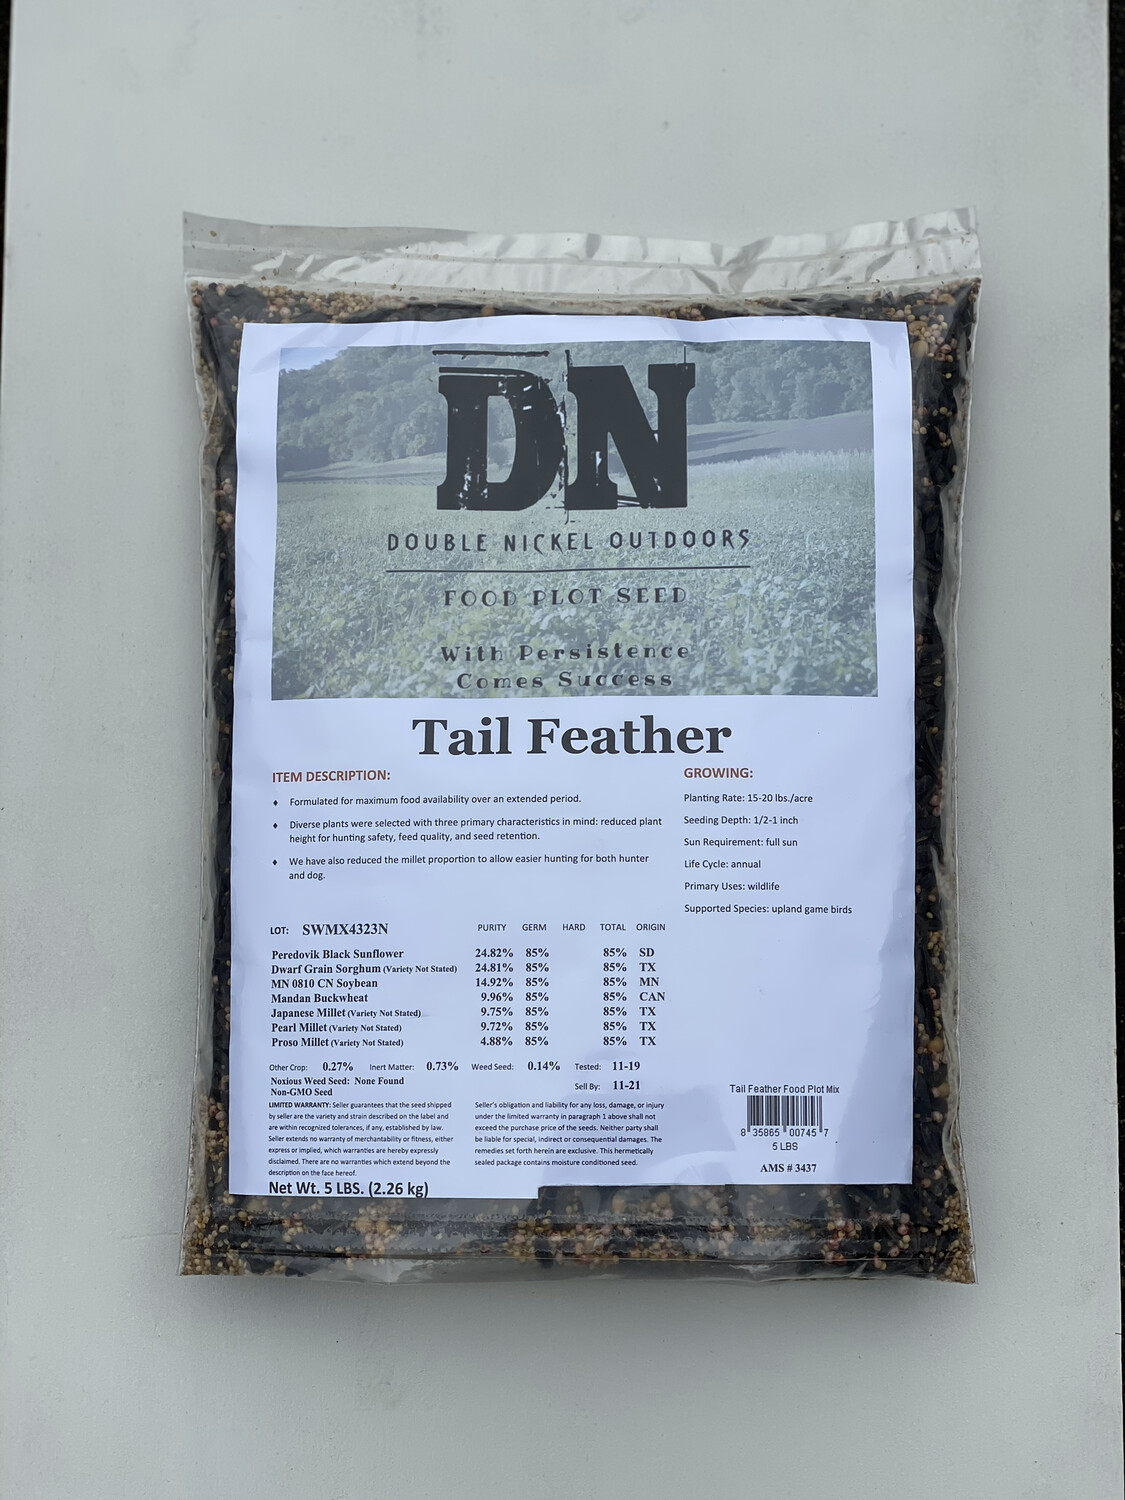 Tail Feather Seed 5lbs Bag